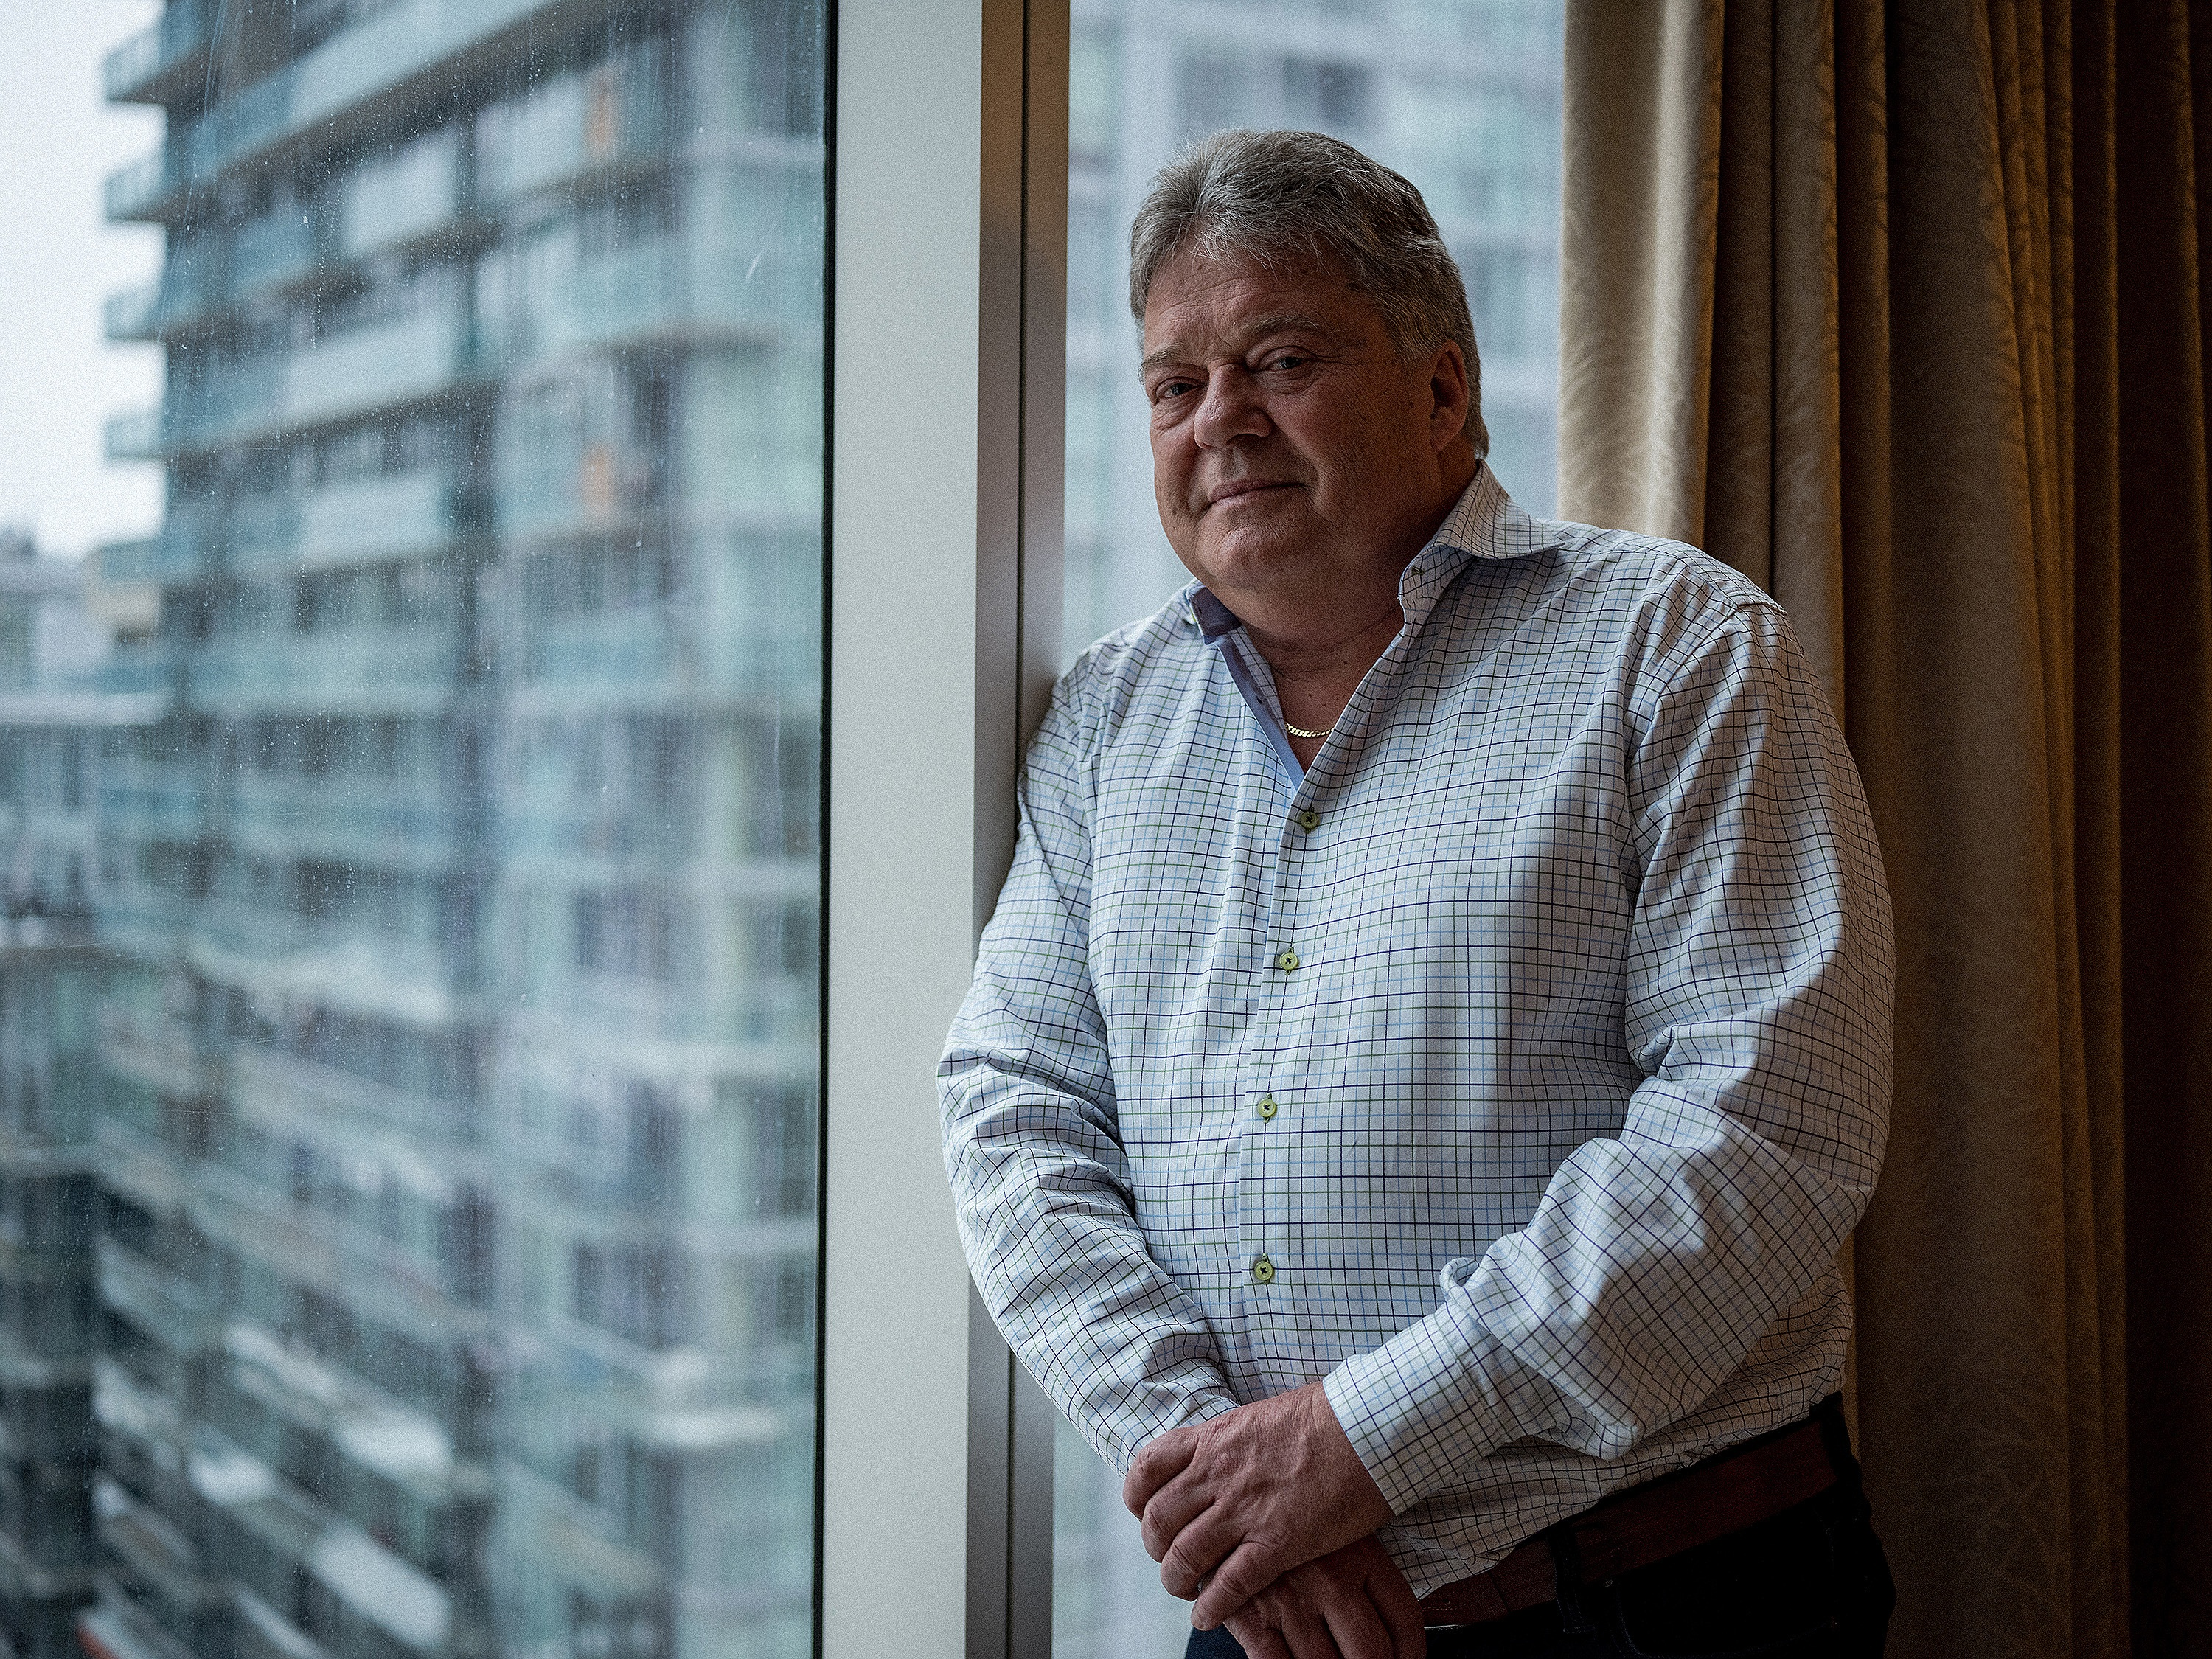 Vic Neufeld is the self-described 'money man' at the helm of Aphria, a Leamington, Ont.-based medical marijuana business. Neufeld, who grew up not far from Aphria's massive greenhouses, rose to prominence as the CEO of Canadian vitamin giant Jamieson. (Evan Mitsui/CBC)